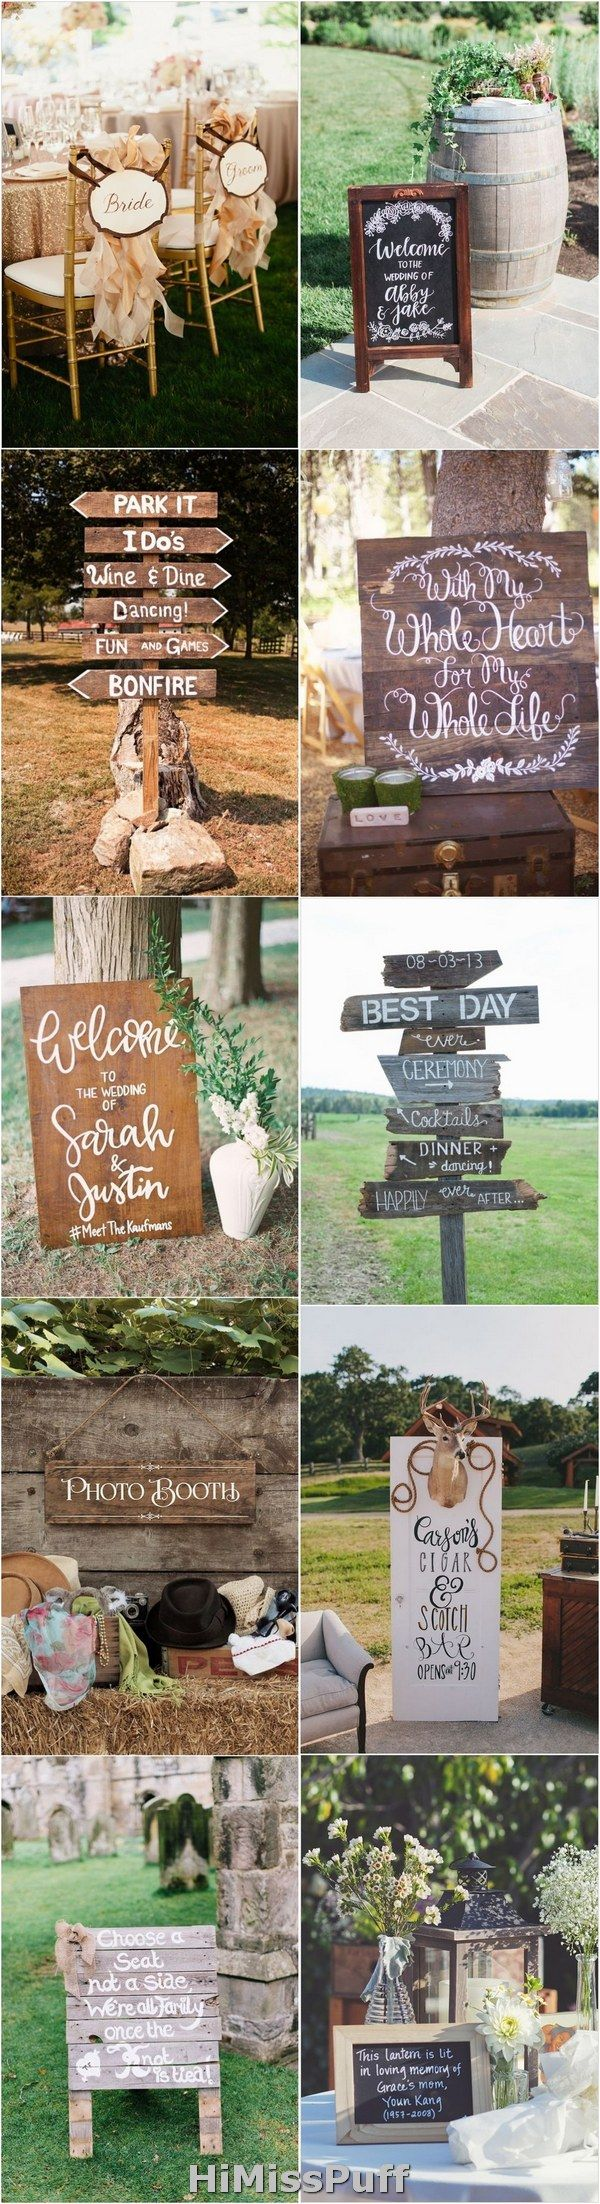 Diy rustic wedding decor ideas   best Cute wedding stuff images on Pinterest  Wedding ideas